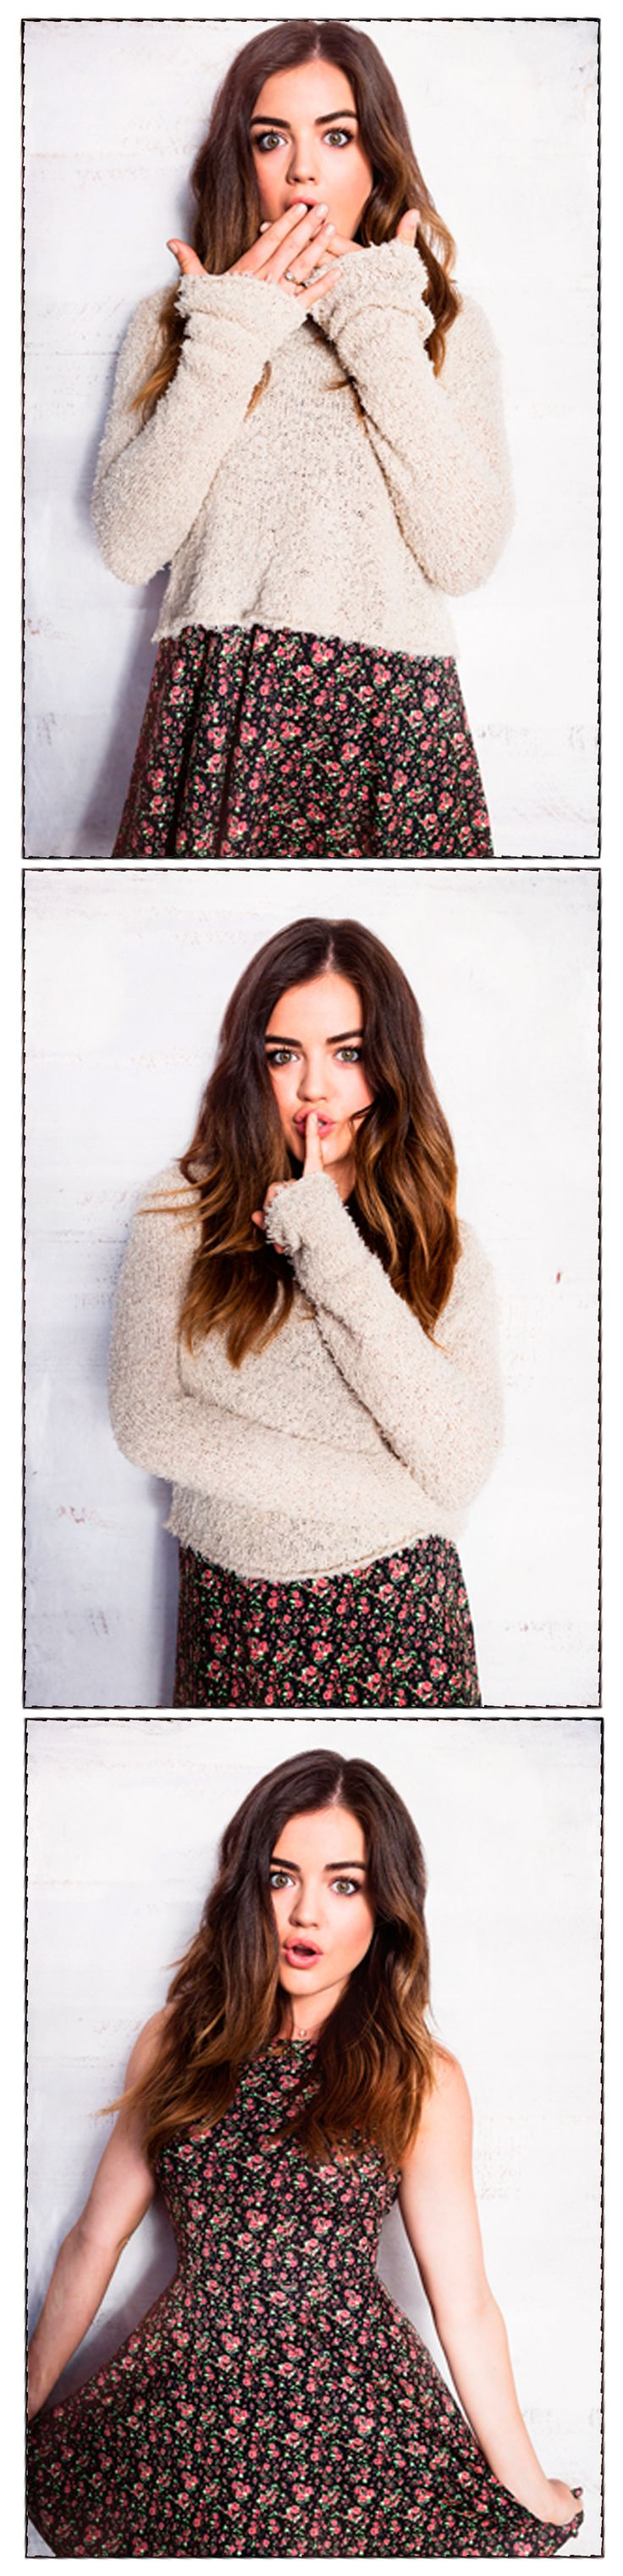 Hollister + Lucy Hale